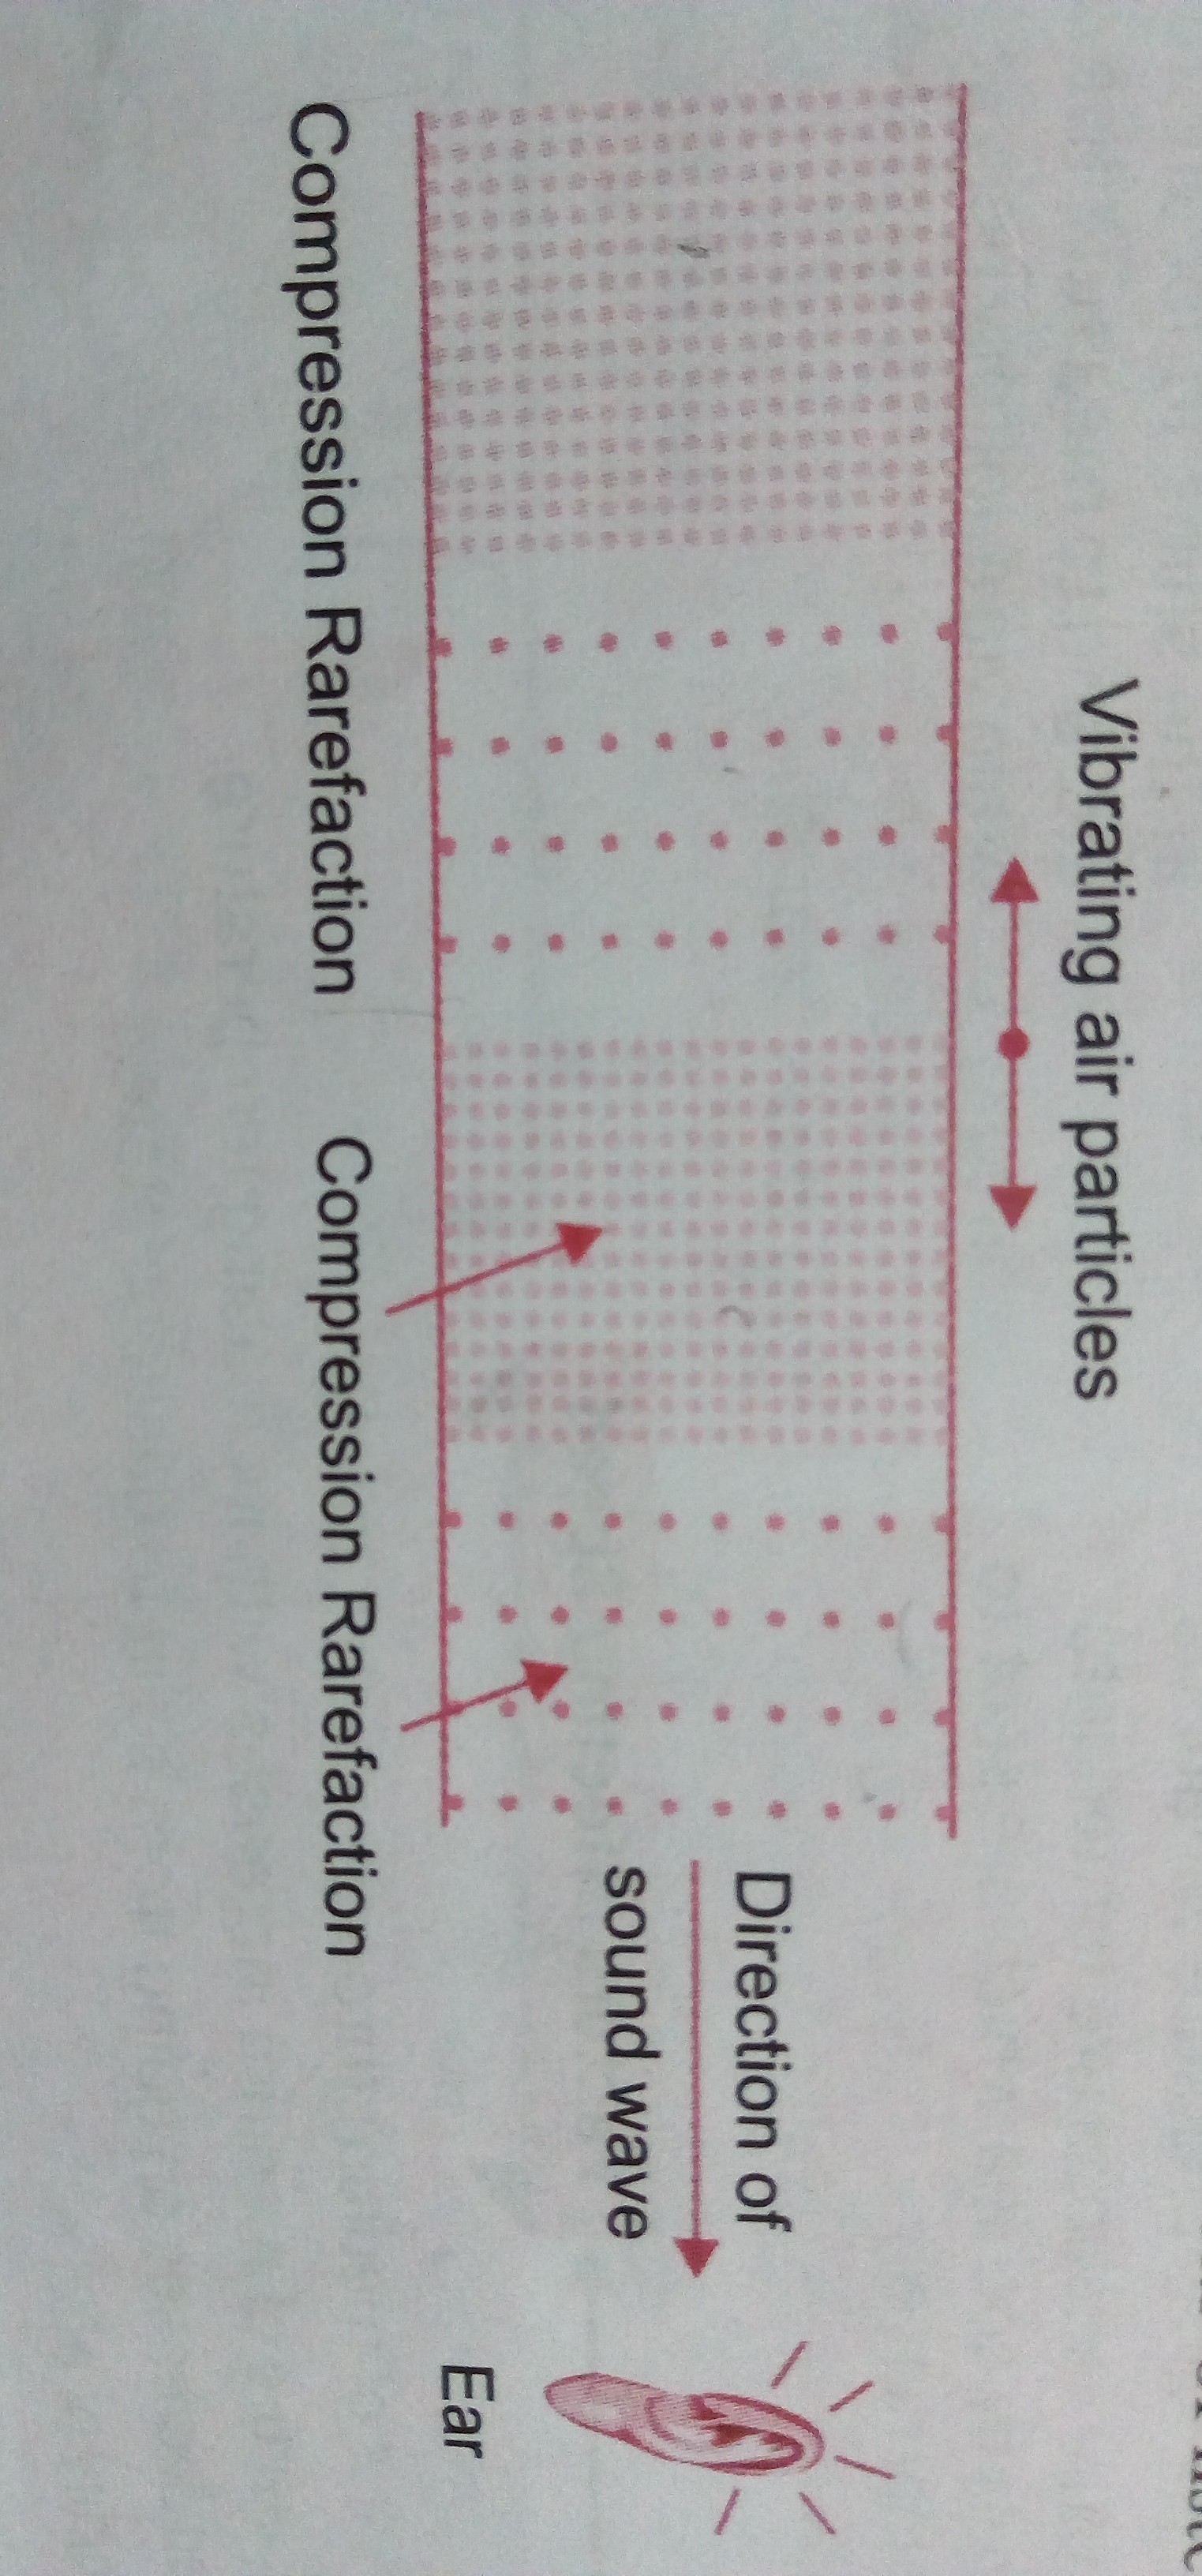 explain how sound is produced and detected through a diagram